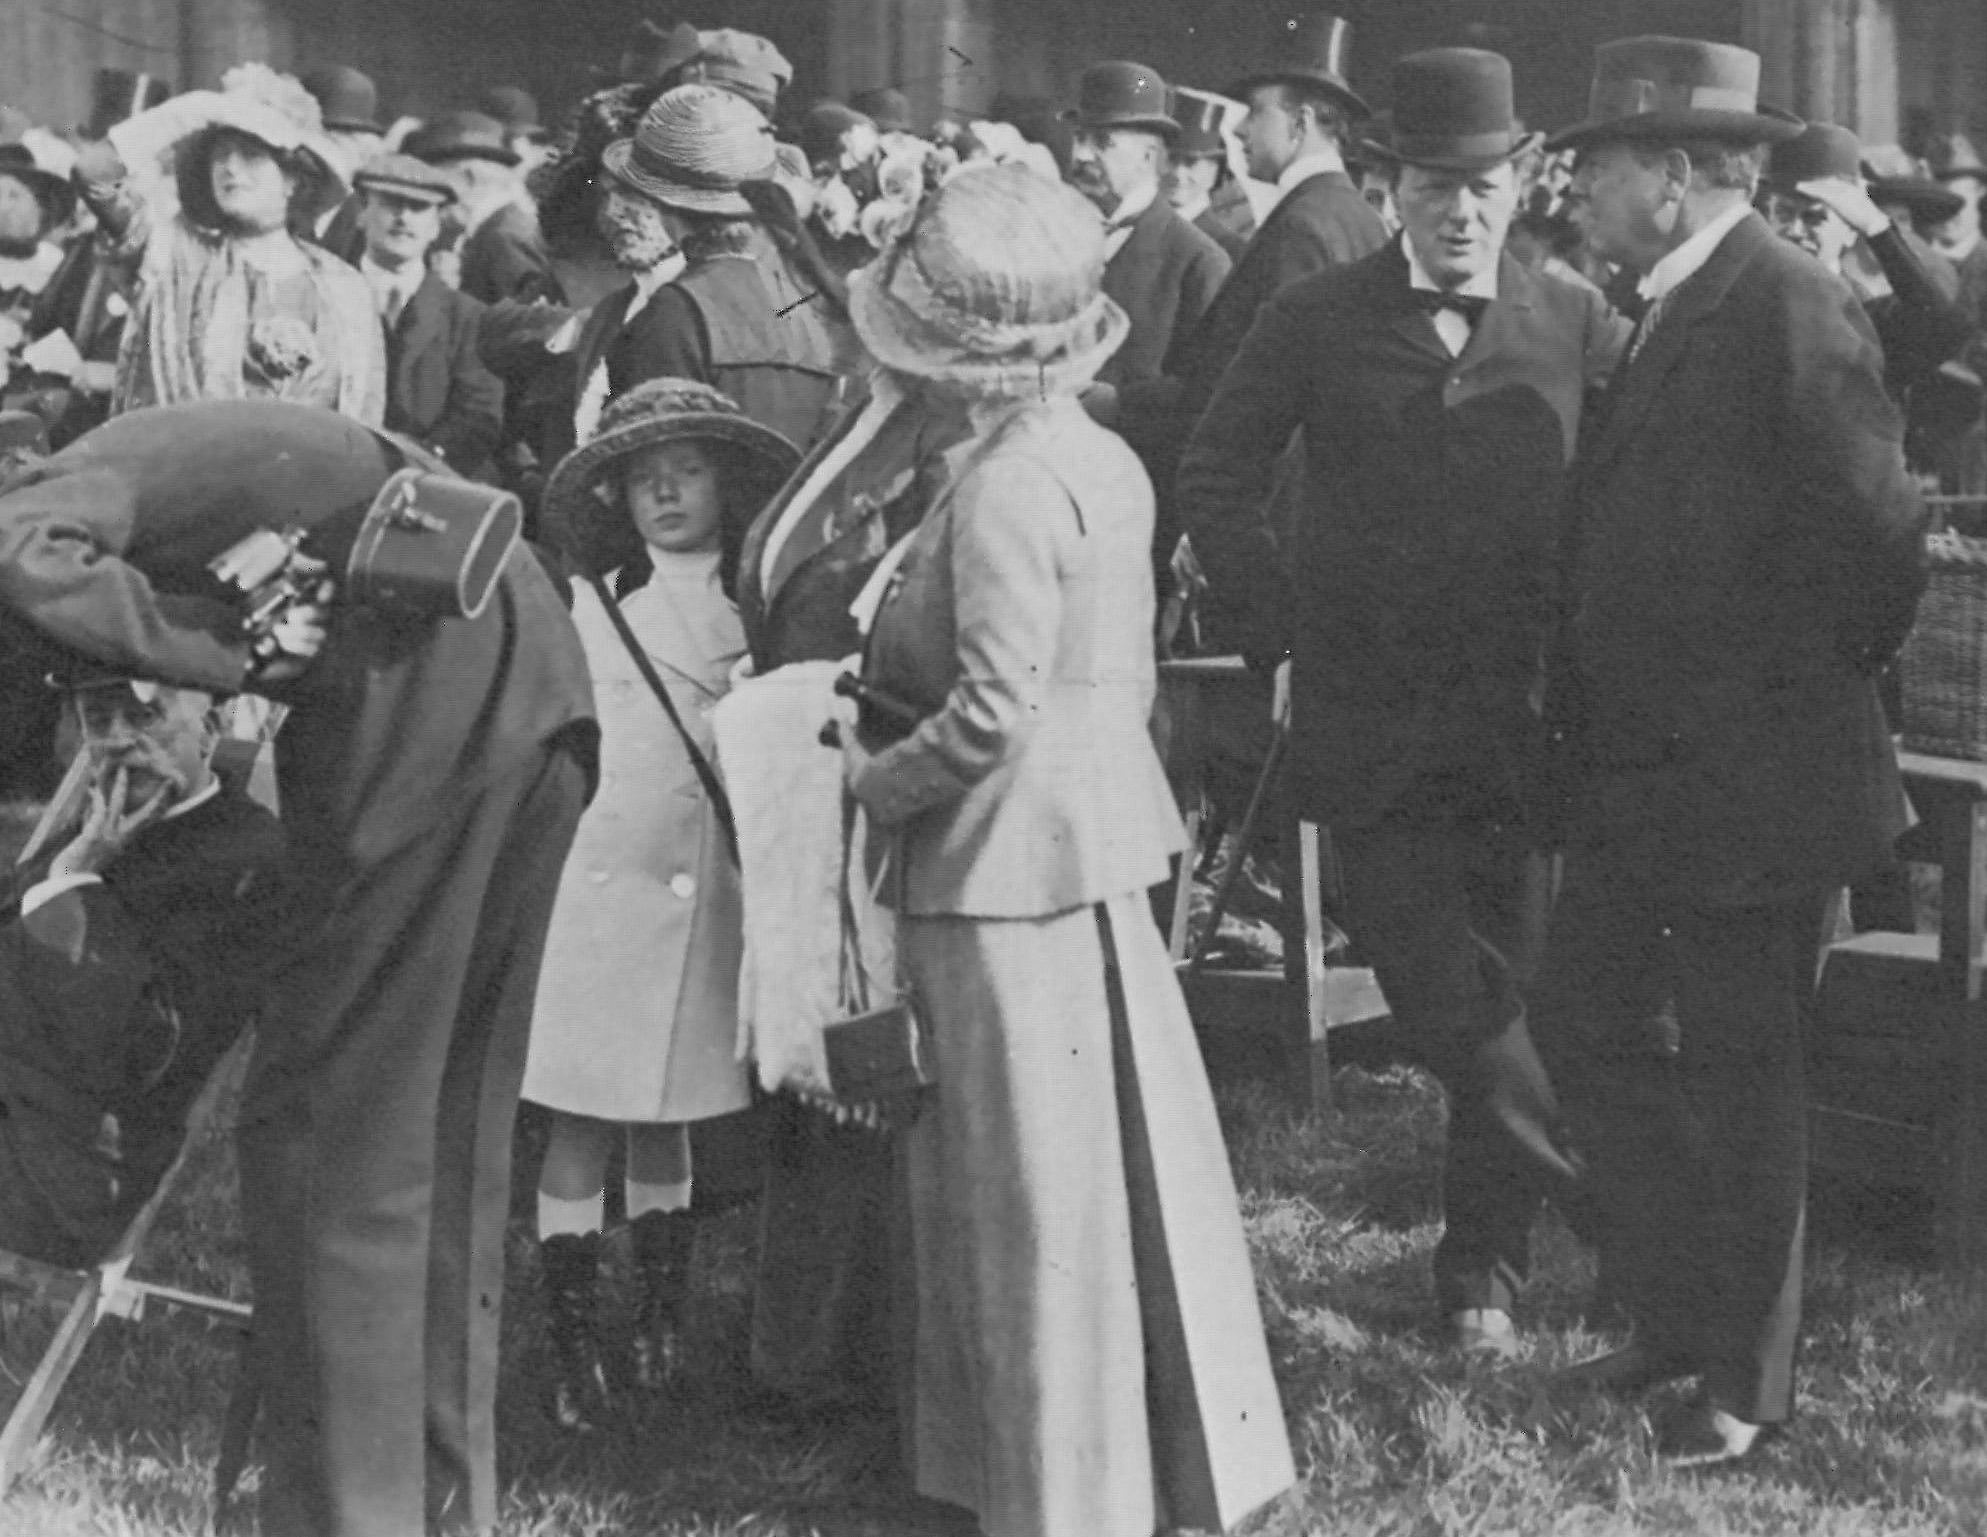 Home Secretary Churchill conversing with Lord Northcliffe, Hendon, 12 May 1911. Clementine Churchill is at left shading her eyes.